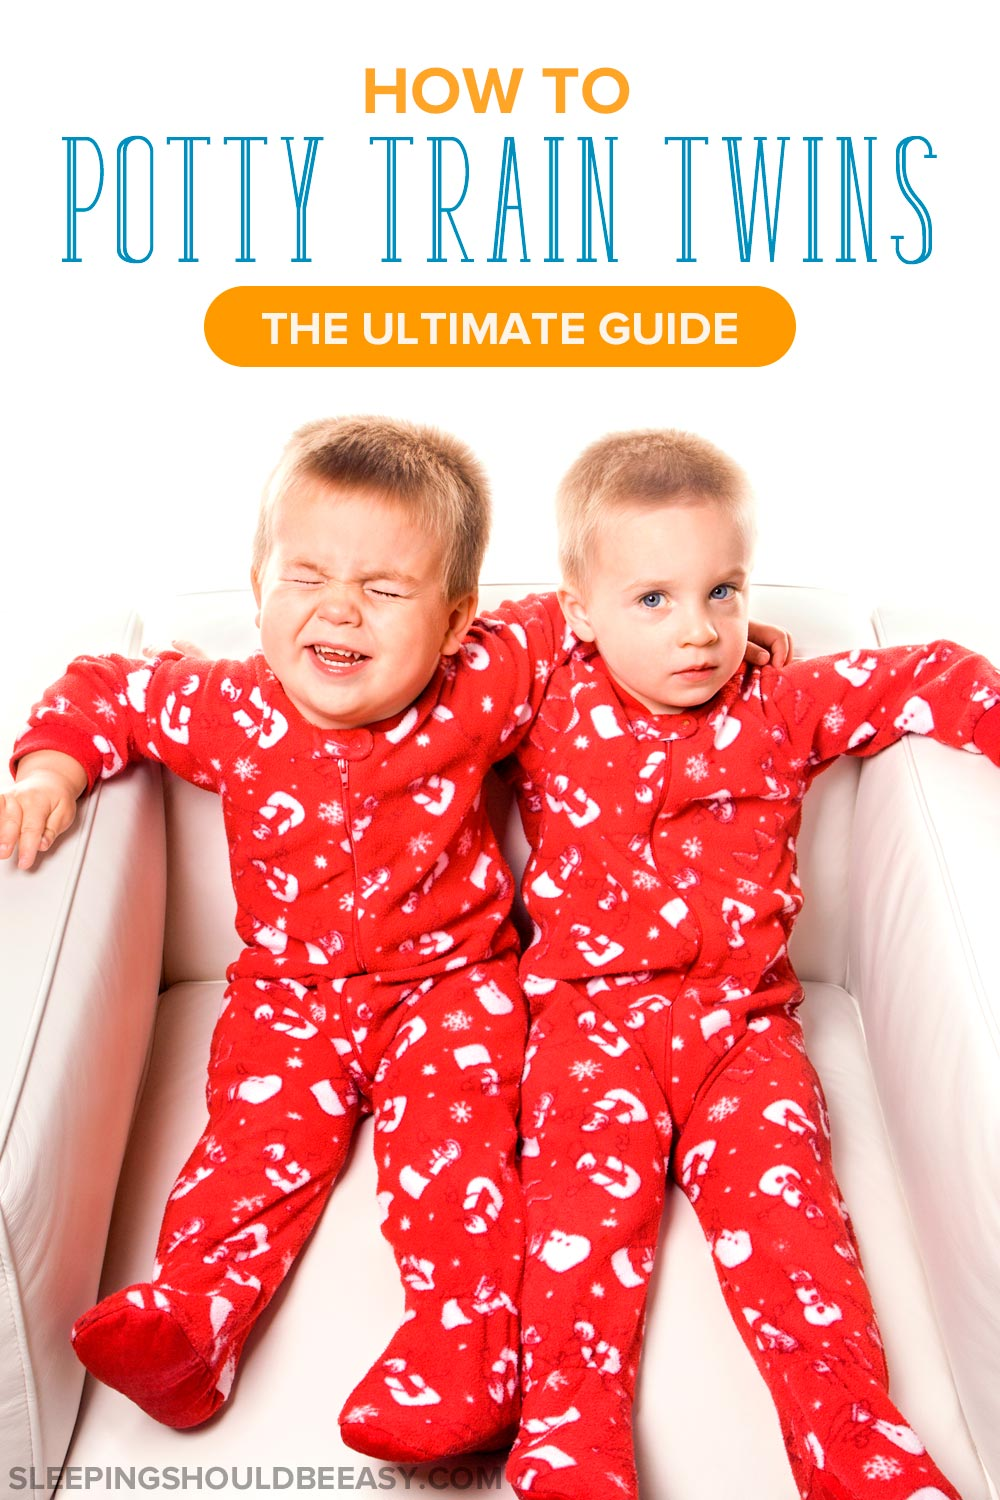 Twin parents, ready to potty train? Learn all about potty training twins, from when to start, how to prepare, and what to do when one twin isn't ready.